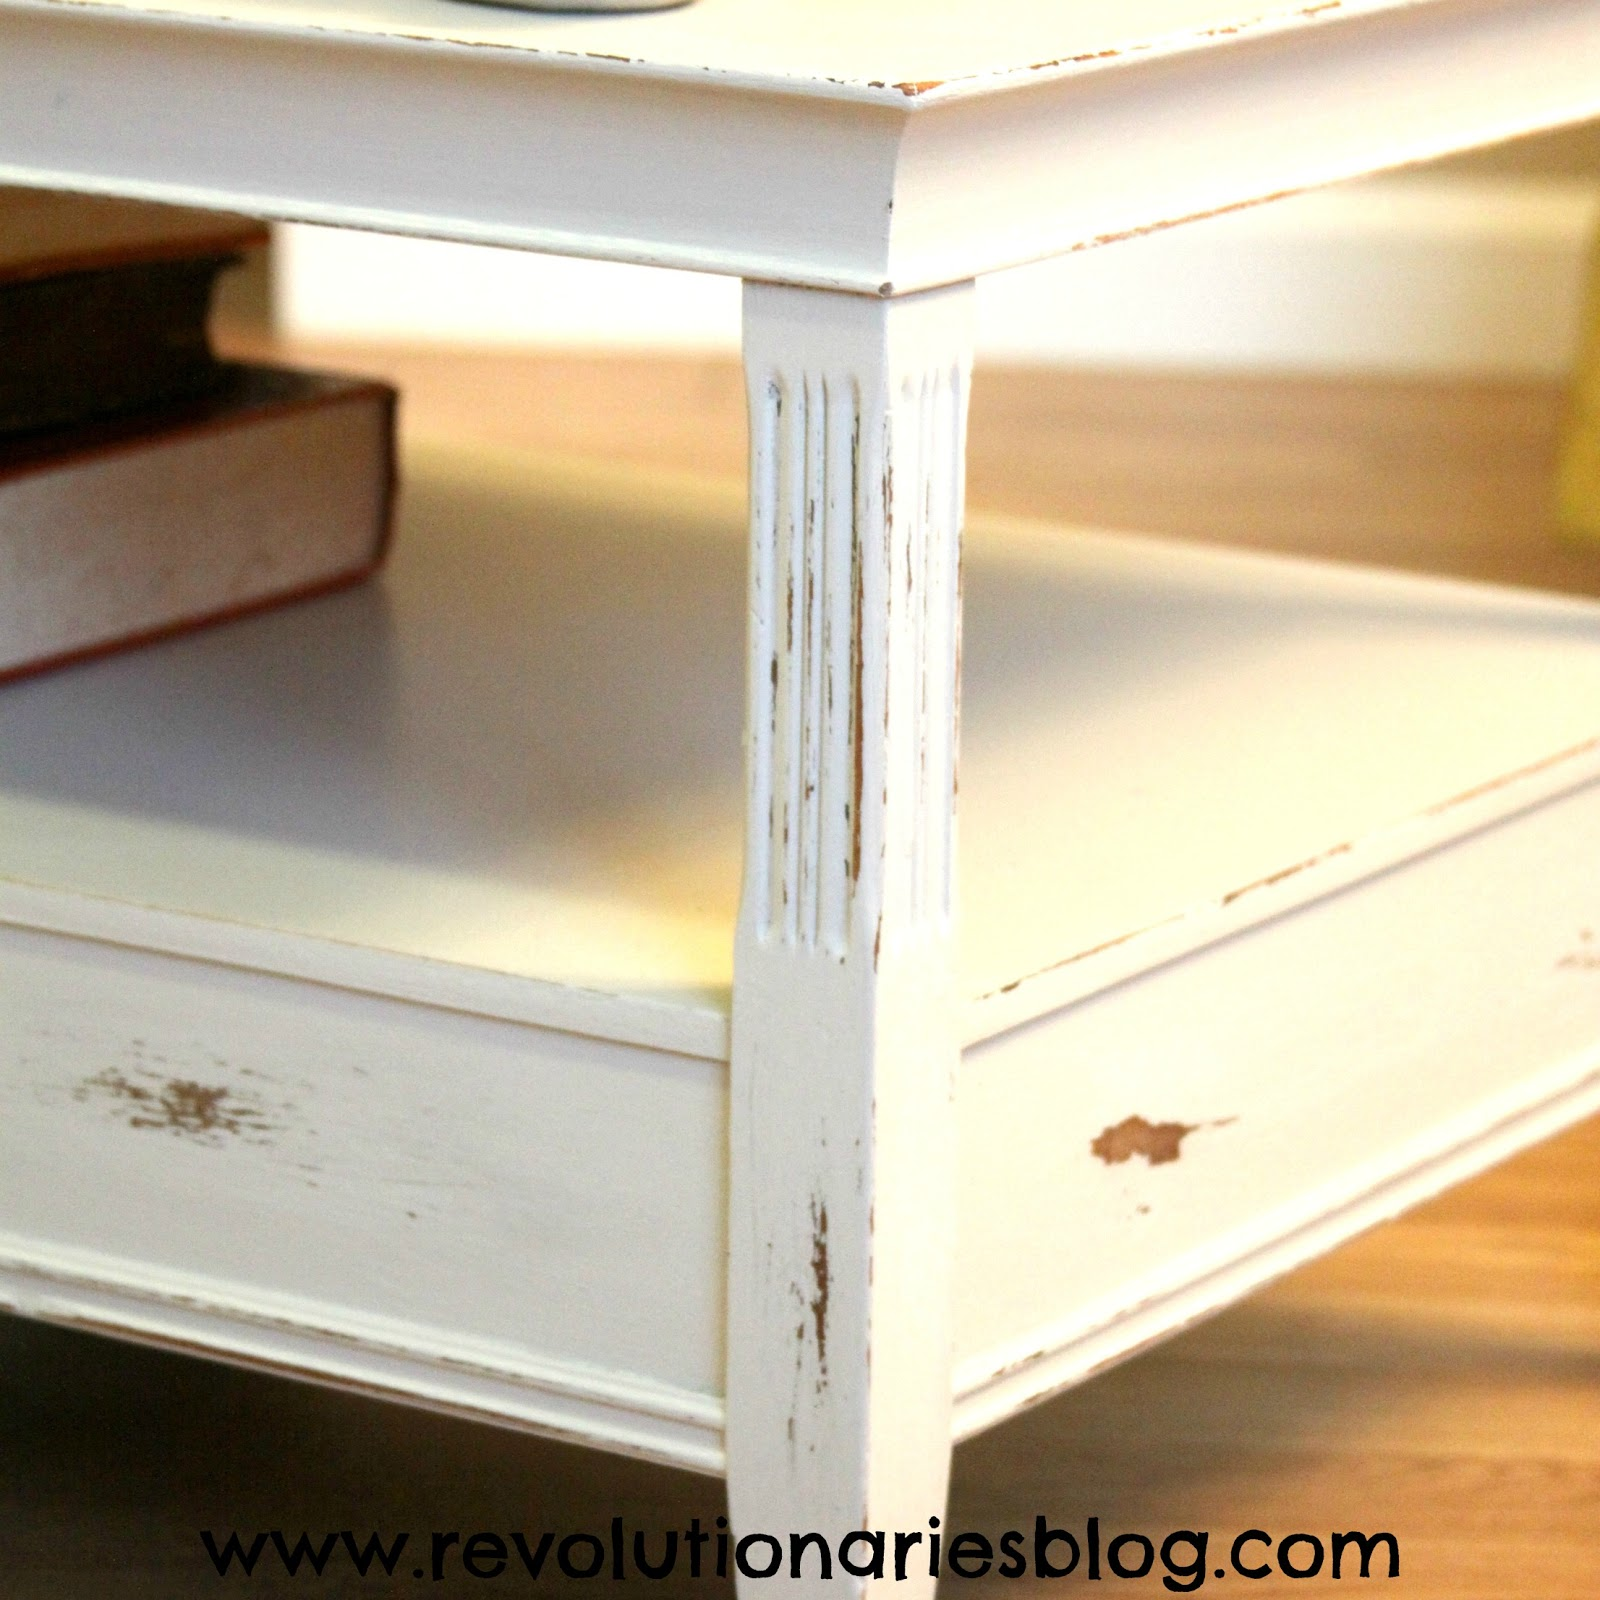 Shabby Chic Coffee Table Nz: Revolutionaries: Shabby Chic Coffee Table